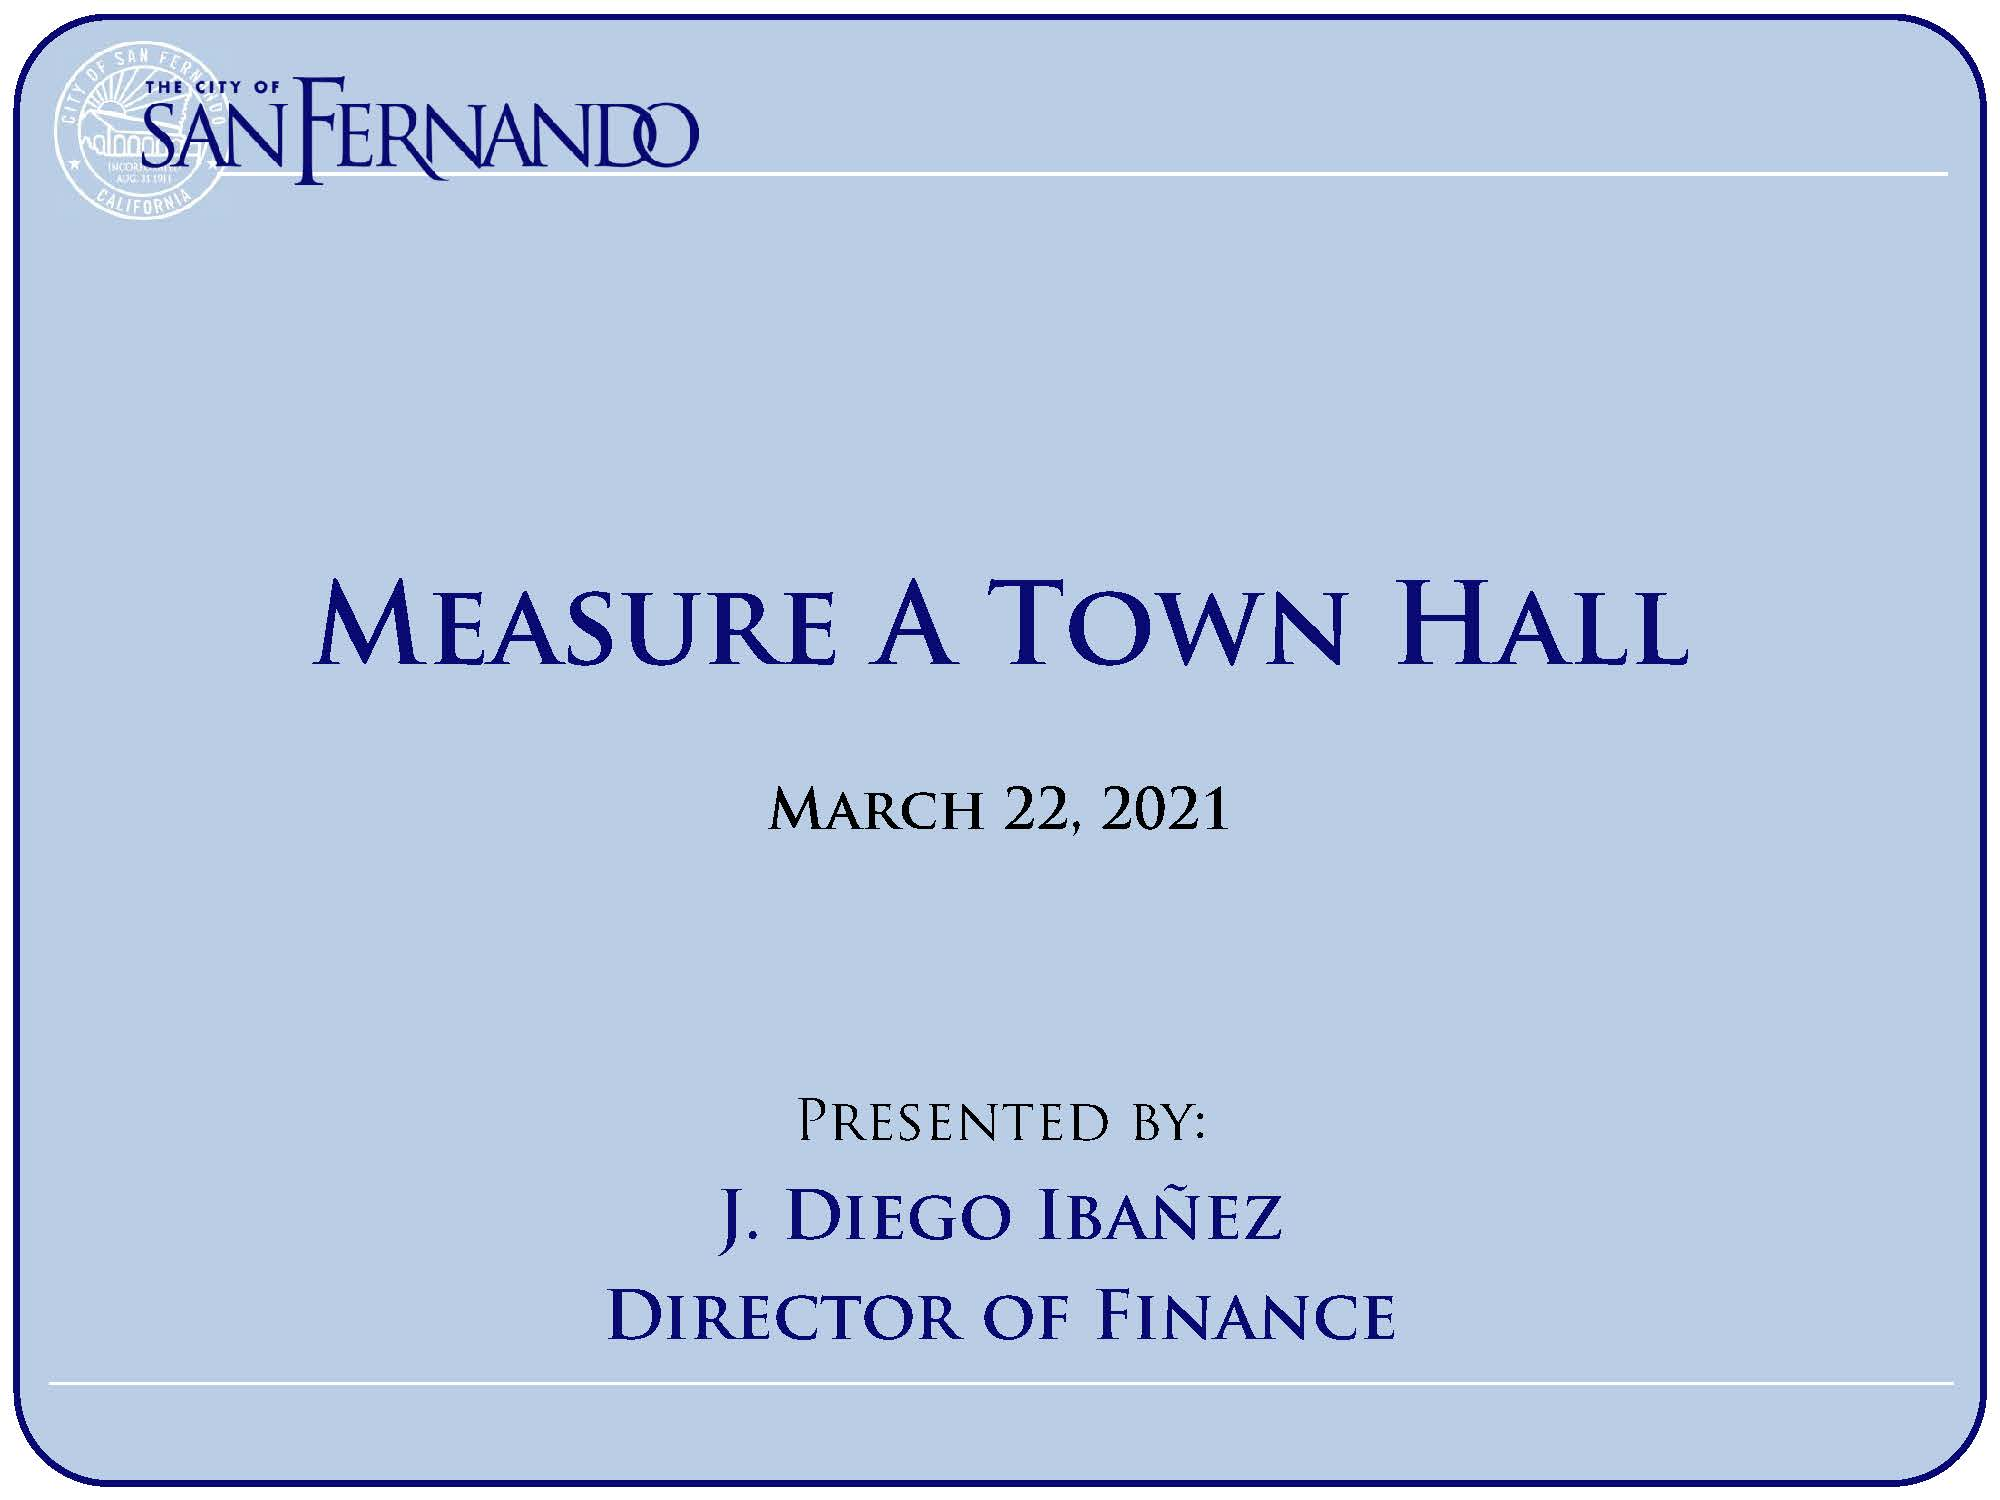 Measure A Town Hall (3-22-2021)